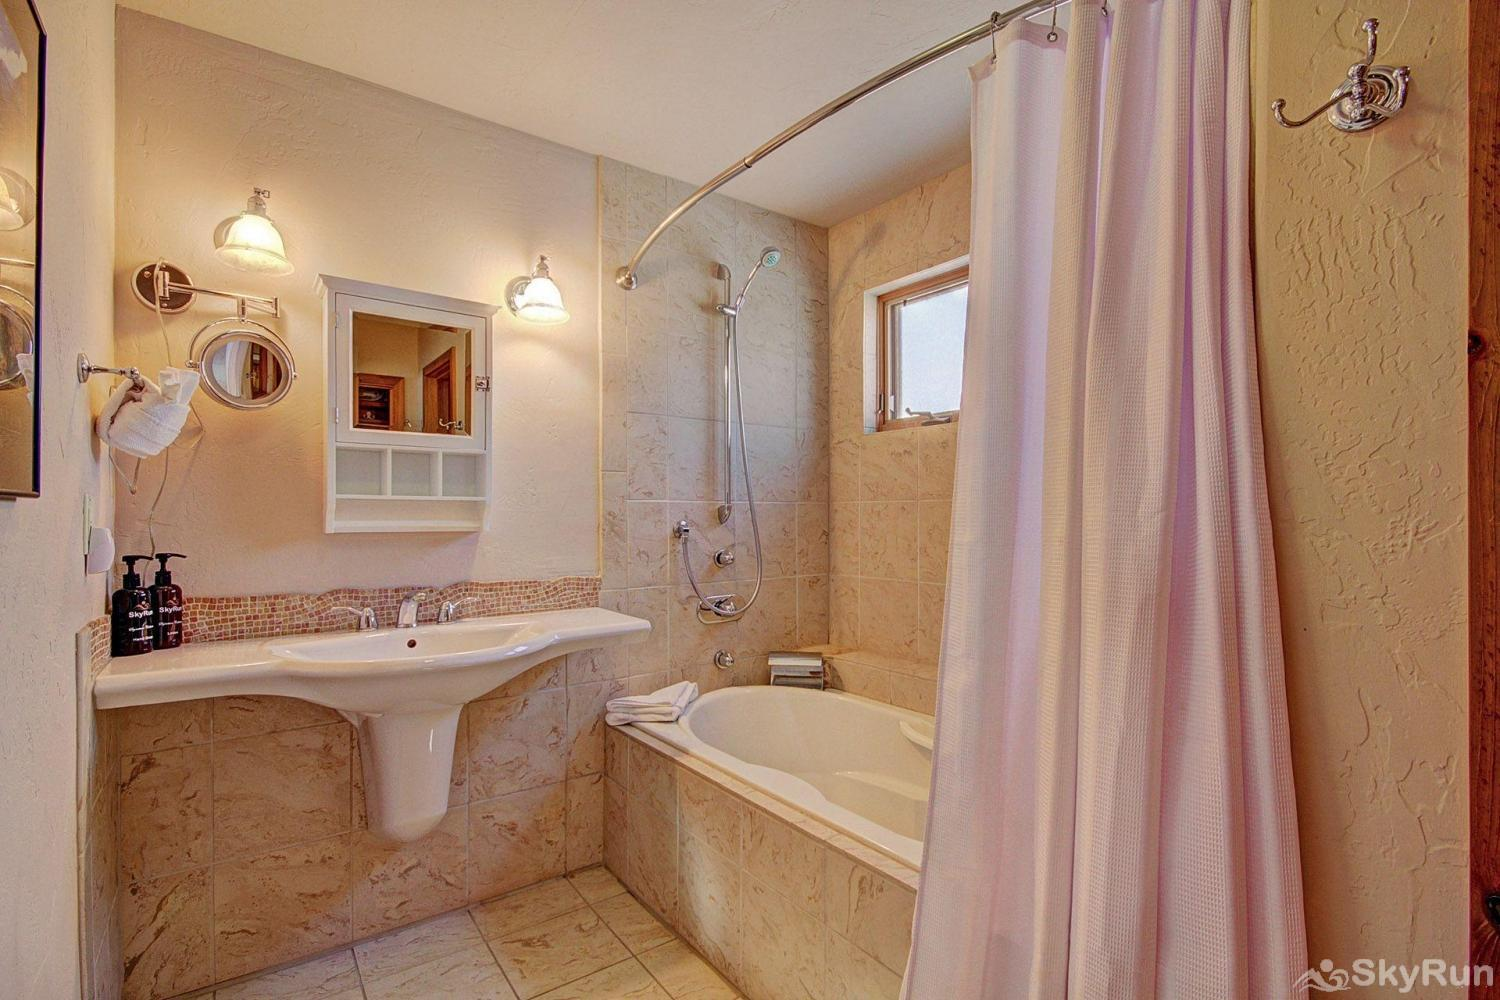 401 Creekside Townhome 2BR 3BA Master Suite 2 Private Bathroom